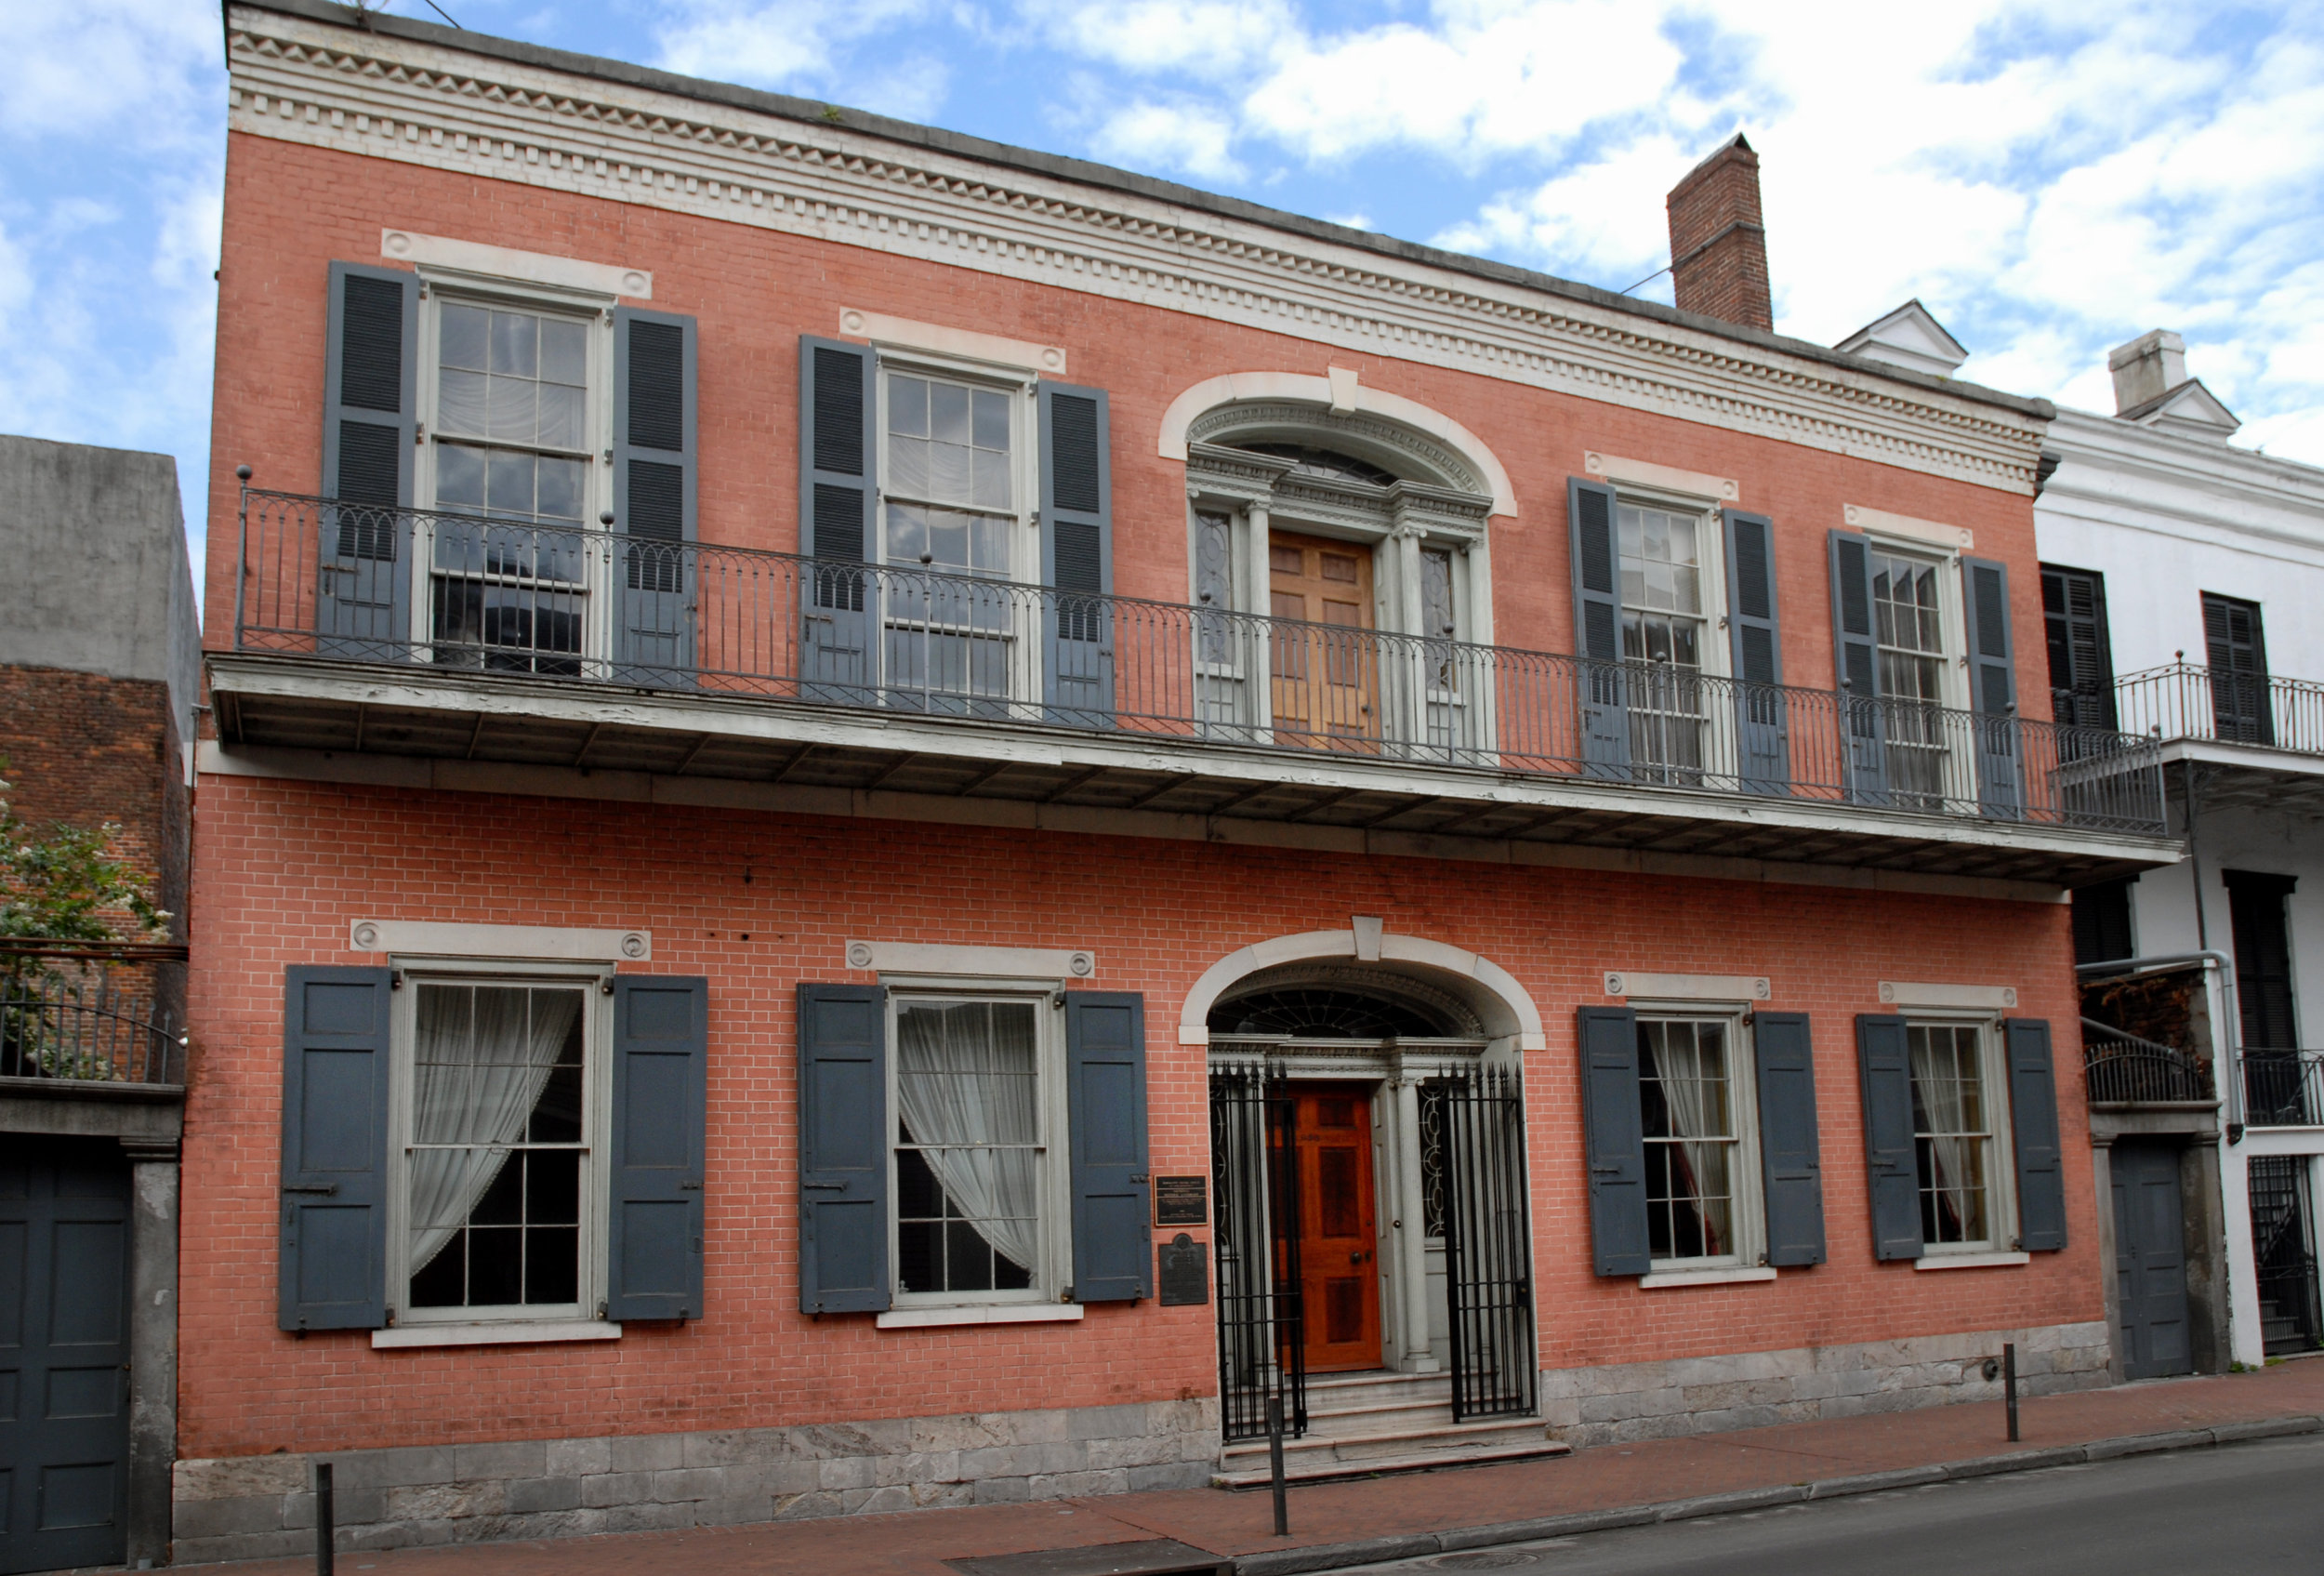 Hermann-Grima House - HoursThursday – Tuesday 10am – 4pmScheduled Tour TimesThursday - Tuesday10 am, 11 am, 12 pm, 1 pm, 2 pm, 3 pm (and by appointment)Closed on Wednesday Open by appointment for groups of 25 or more Exchange Shop HoursDaily 10 am – 4pm